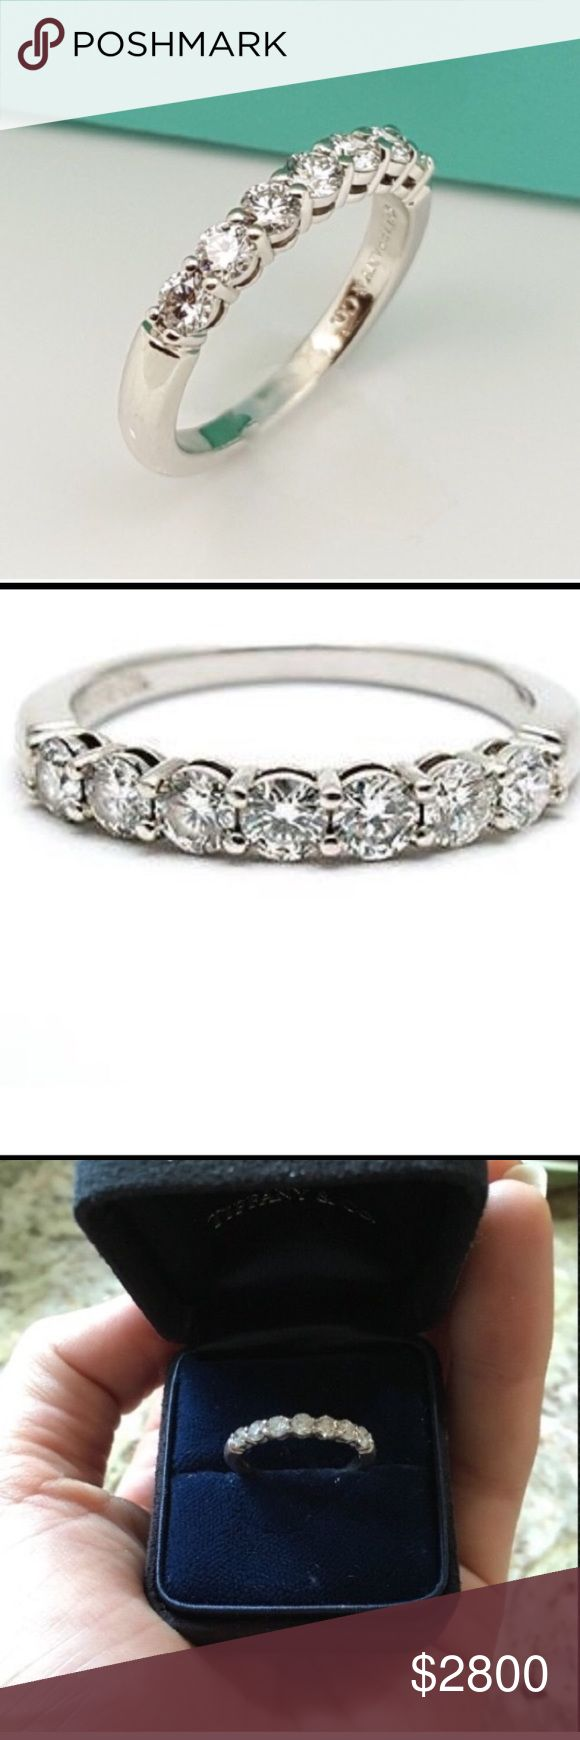 Tiffany and Co. platinum diamond engagement band Tiffany and Co shared setting band ring. Shared settings band ring with a half circle of round brilliant diamonds in platinum. 3mm wide. Estimate $6,000 value. The diamonds are loose and should be tightened. The 3rd diamond has a bit of wear and tear. This ring is absolutely stunning ! Size 6.25.      Negotiable through PP Tiffany & Co. Jewelry Rings